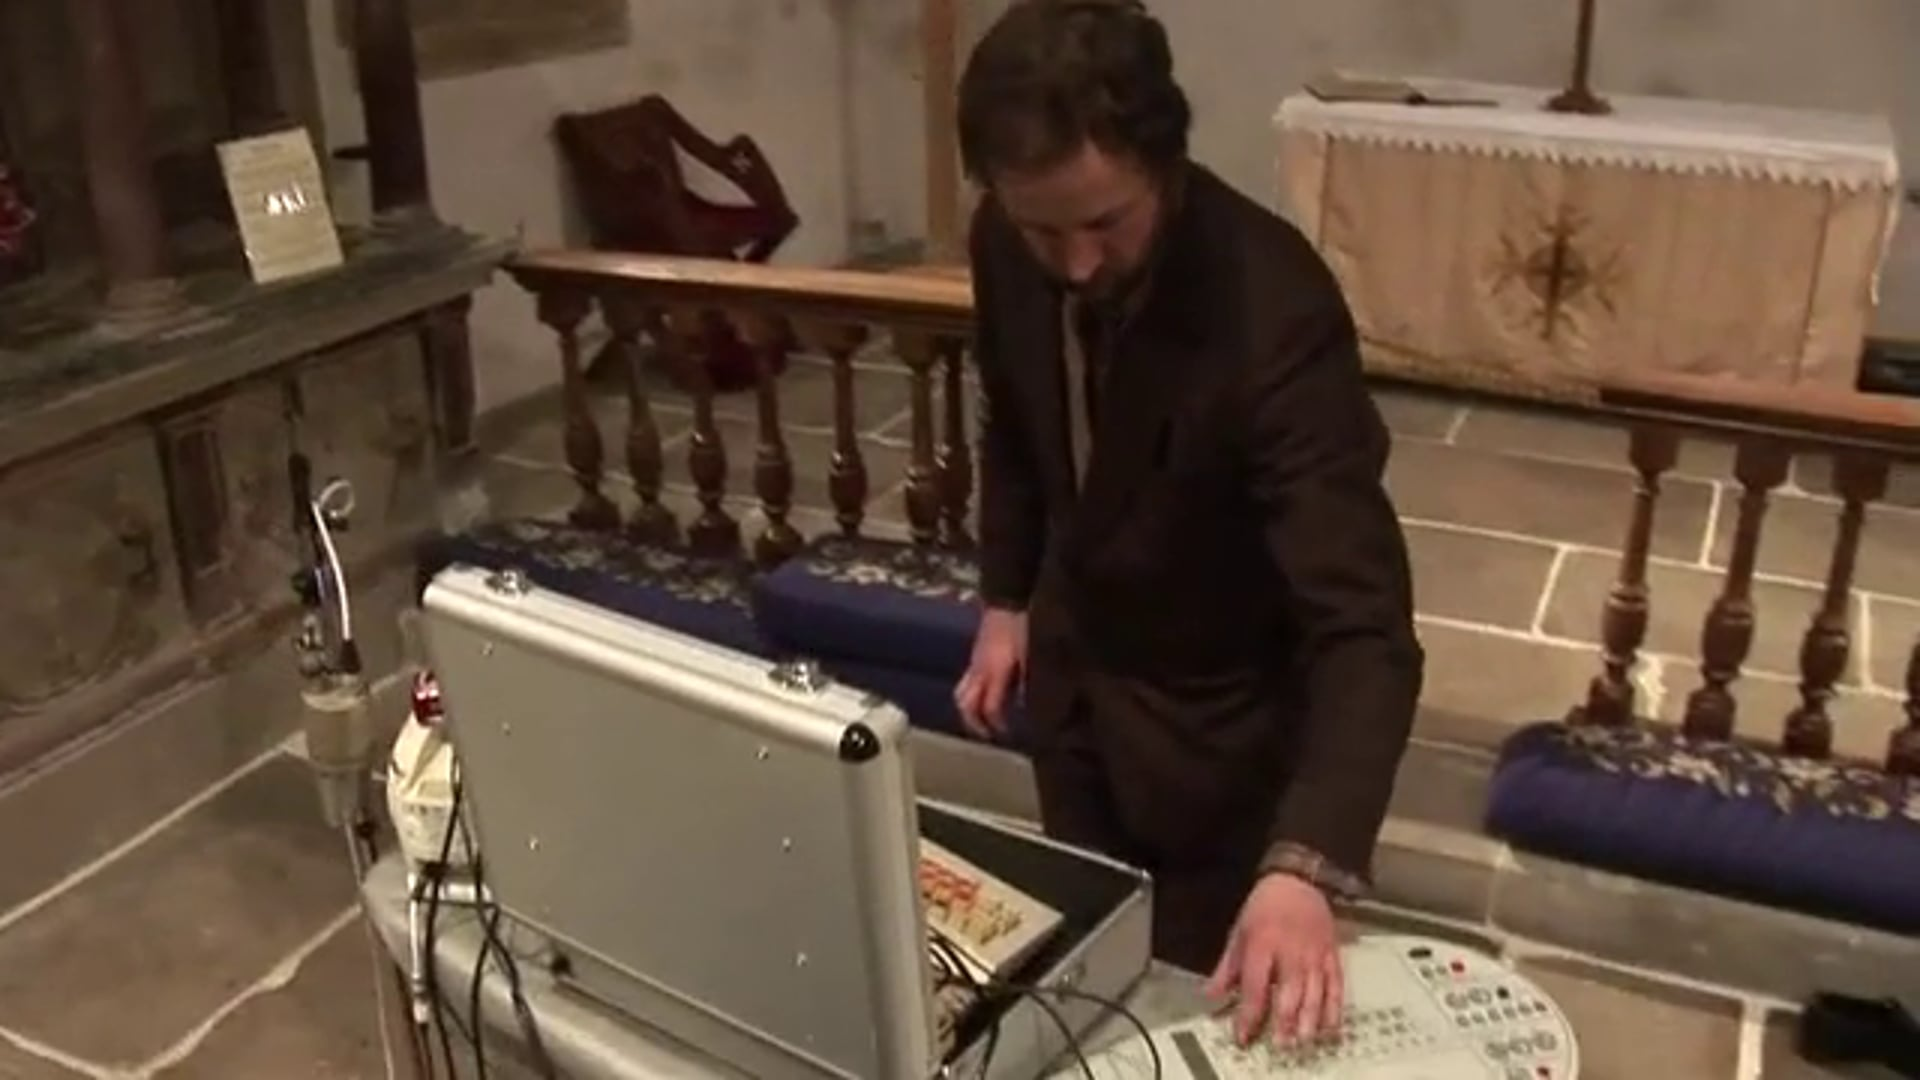 Alex Metcalfe plays Satie's Gymnopédie No.1 on a collection of silly instruments